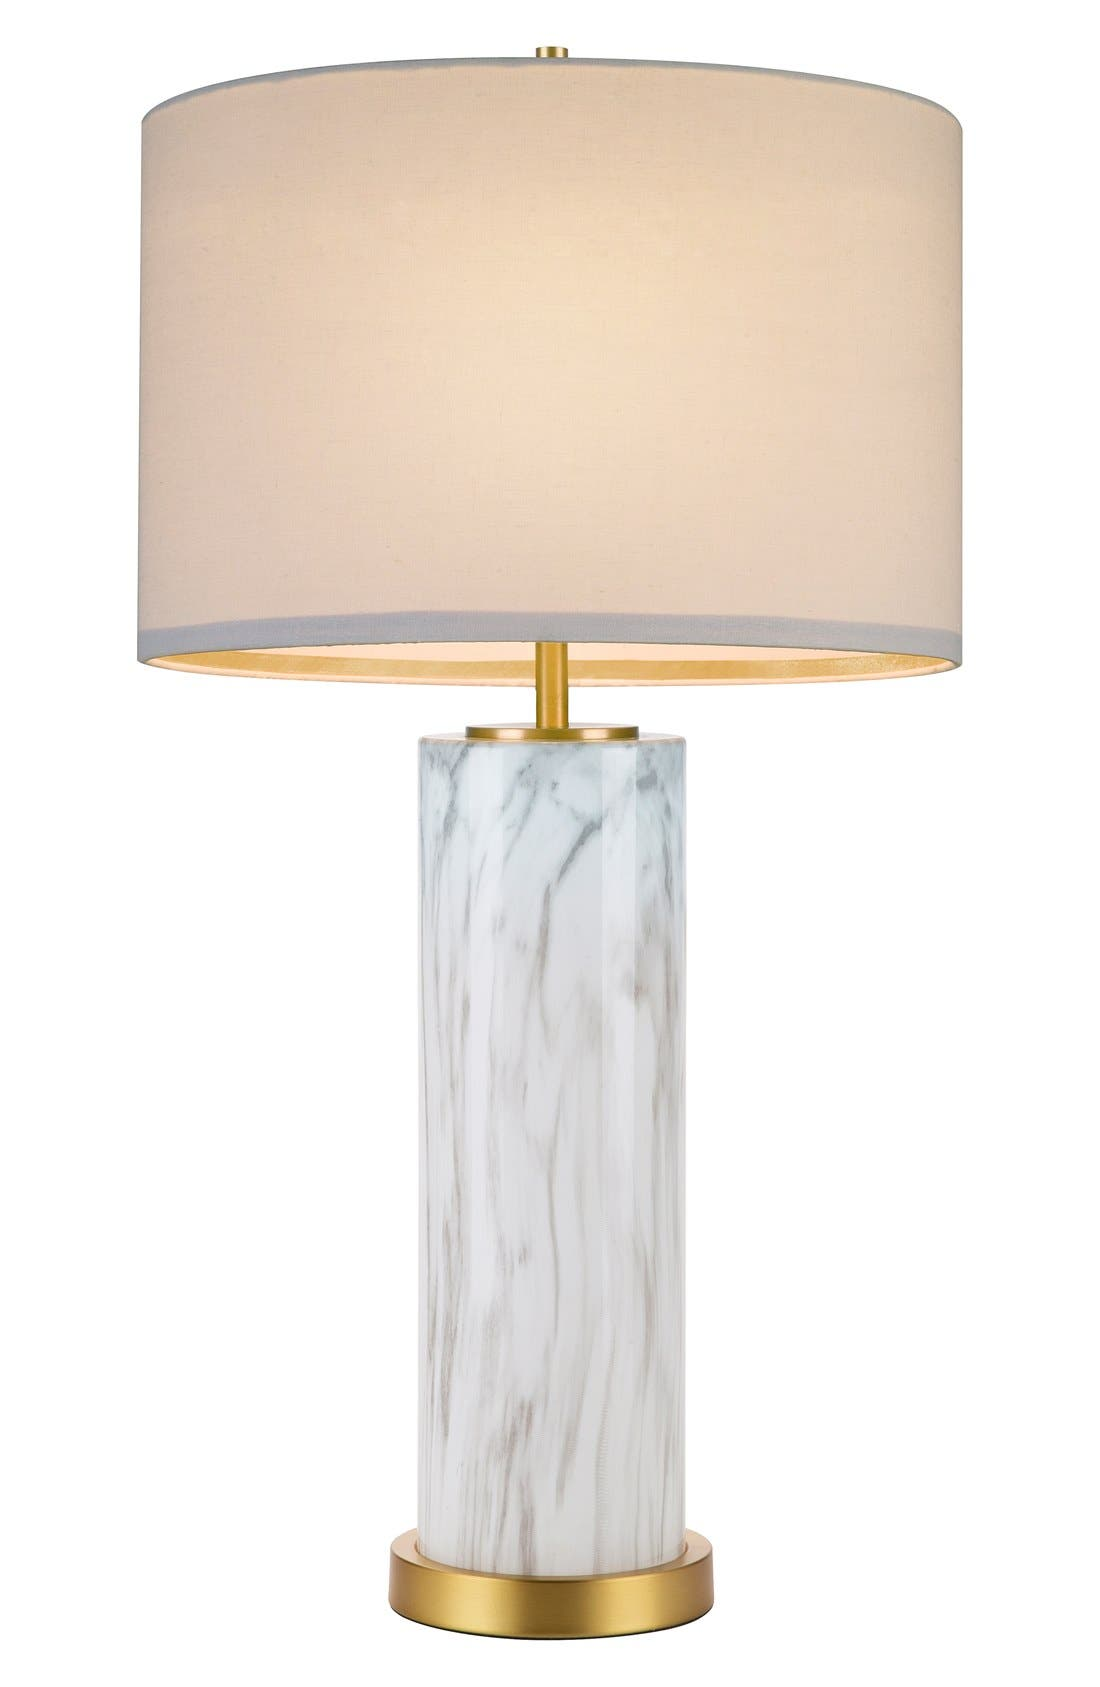 Marble Column Table Lamp,                         Main,                         color, Grey White